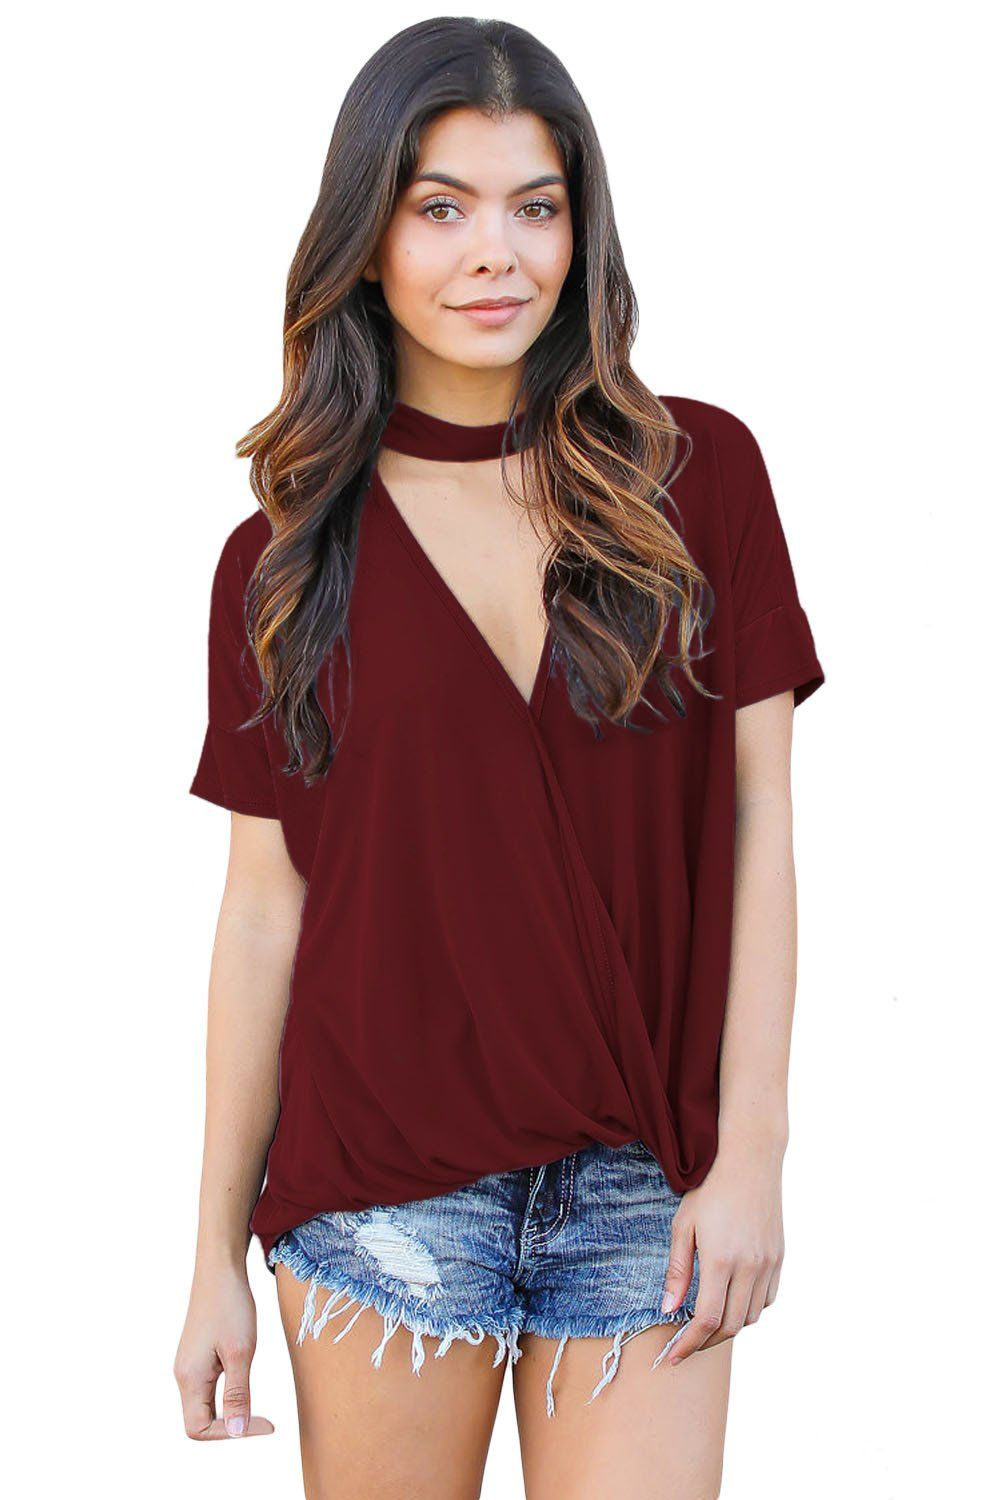 c6f26376b166 Burgundy Choker N... Fashion Quality Boutik always has fashion finds with  your in